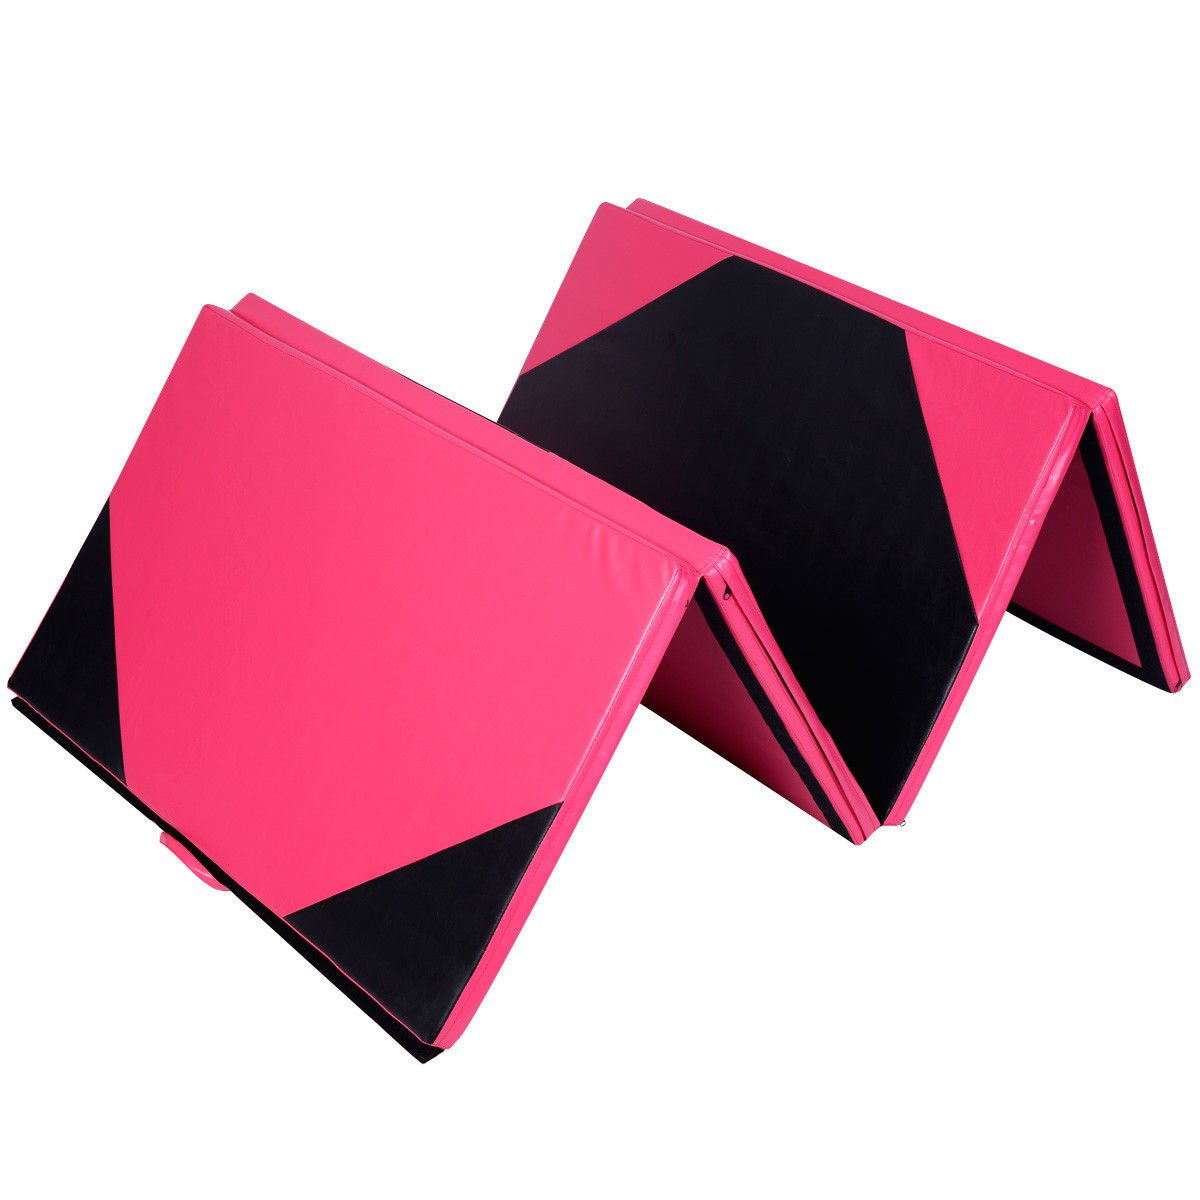 mat a mats kids com folding is gymnastics for must gym yourtoysguide safety best